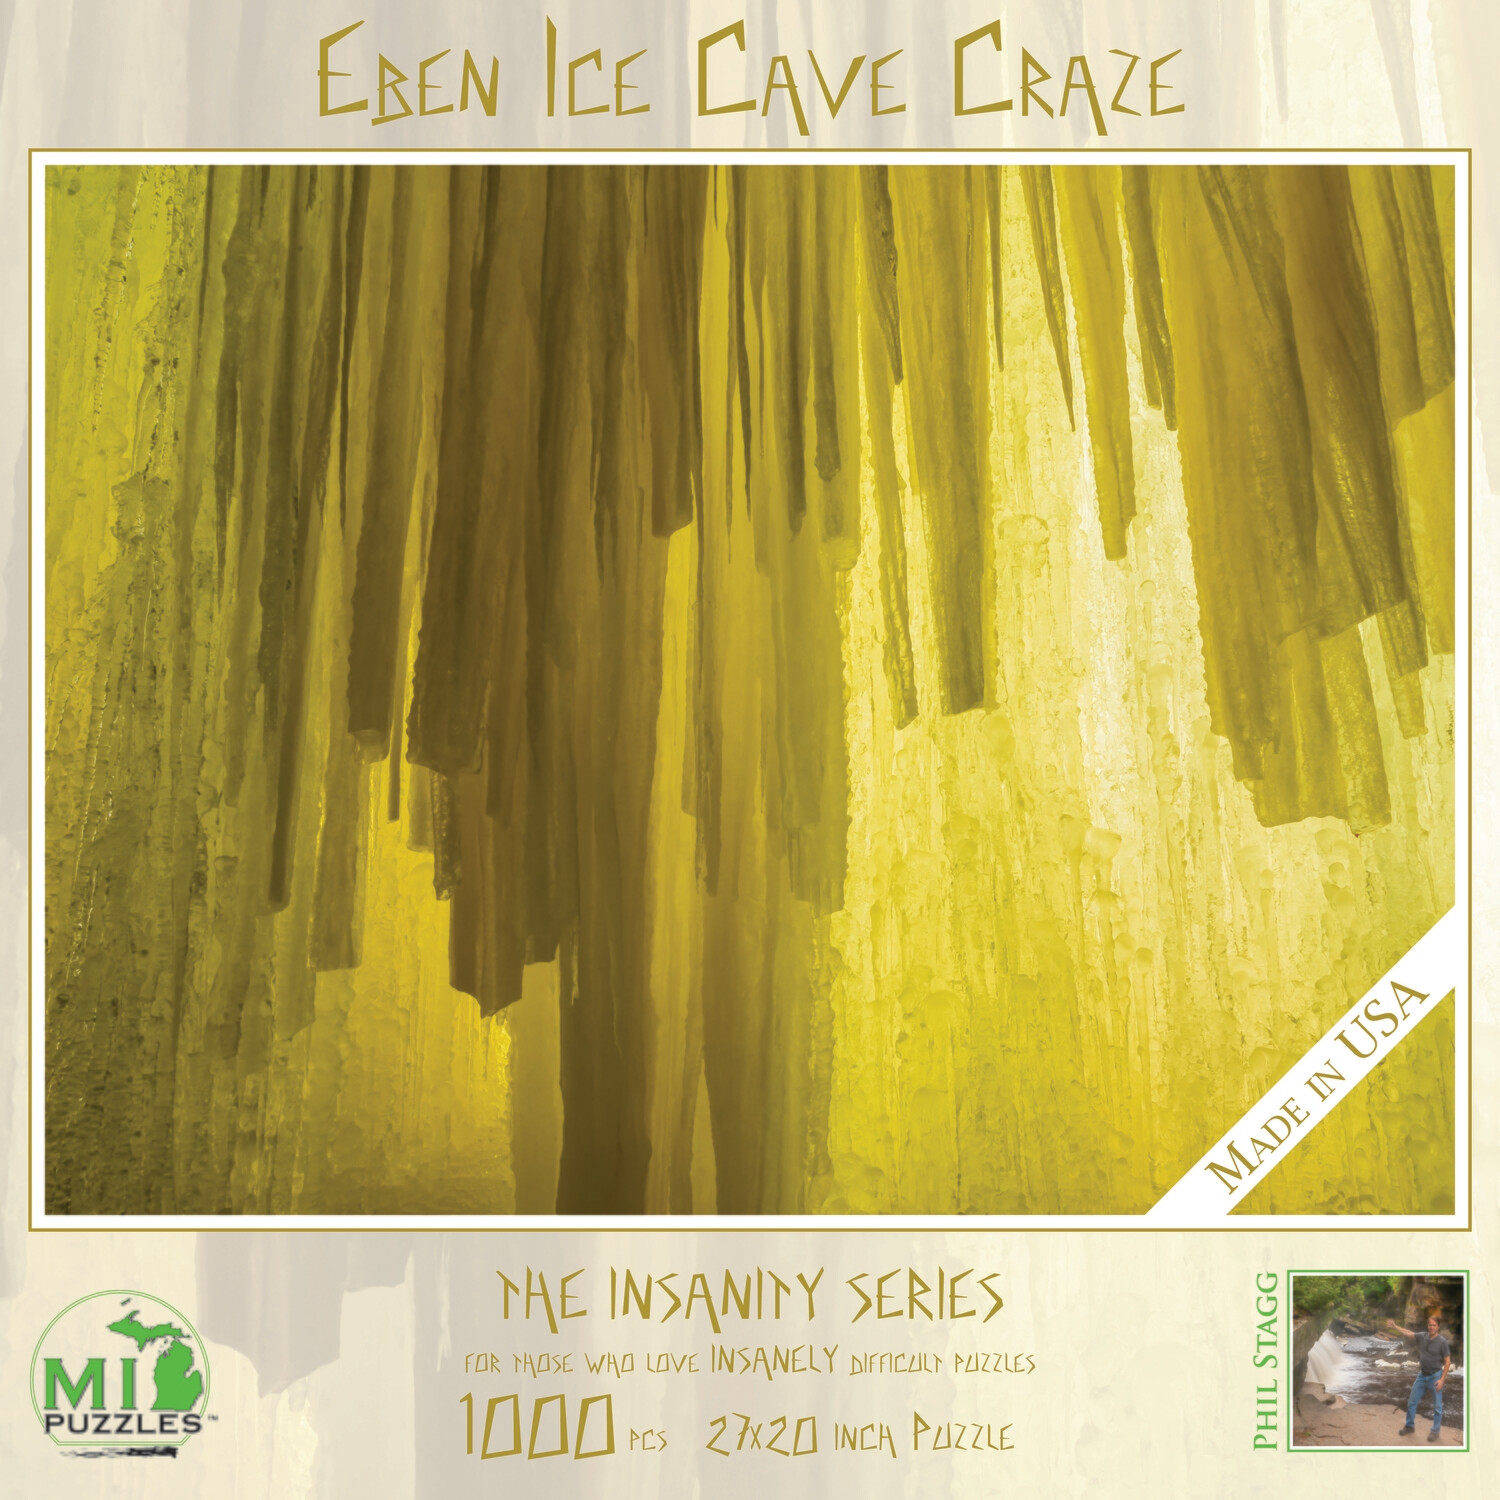 EBEN ICE CAVES CRAZE - 1,000 PIECE